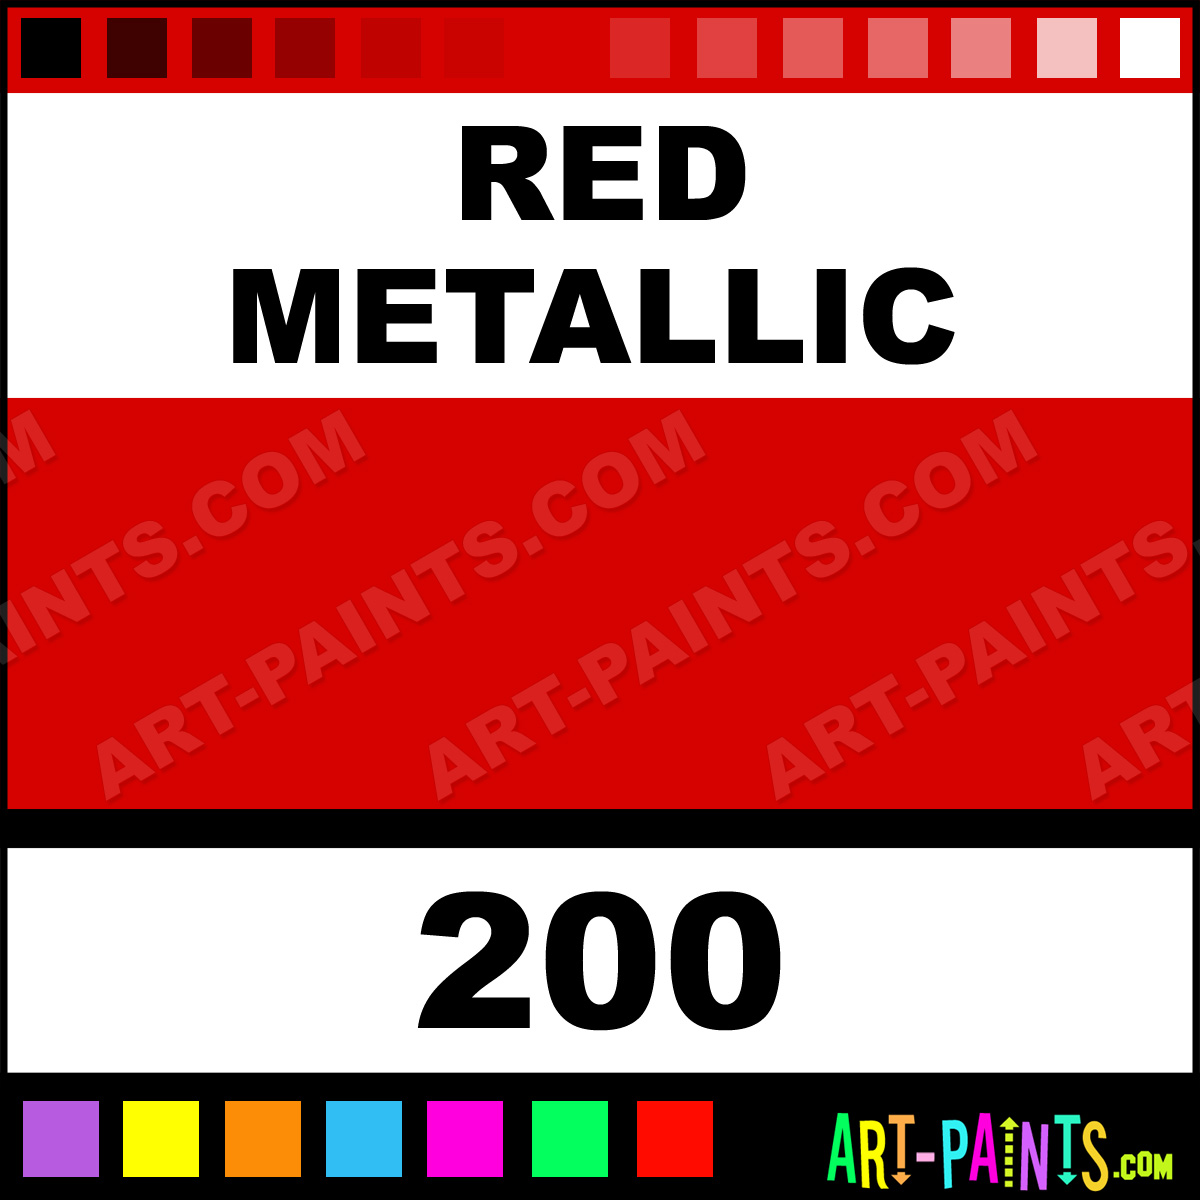 Red metallic fast dry enamel paints 200 red metallic for Fast drying craft paint